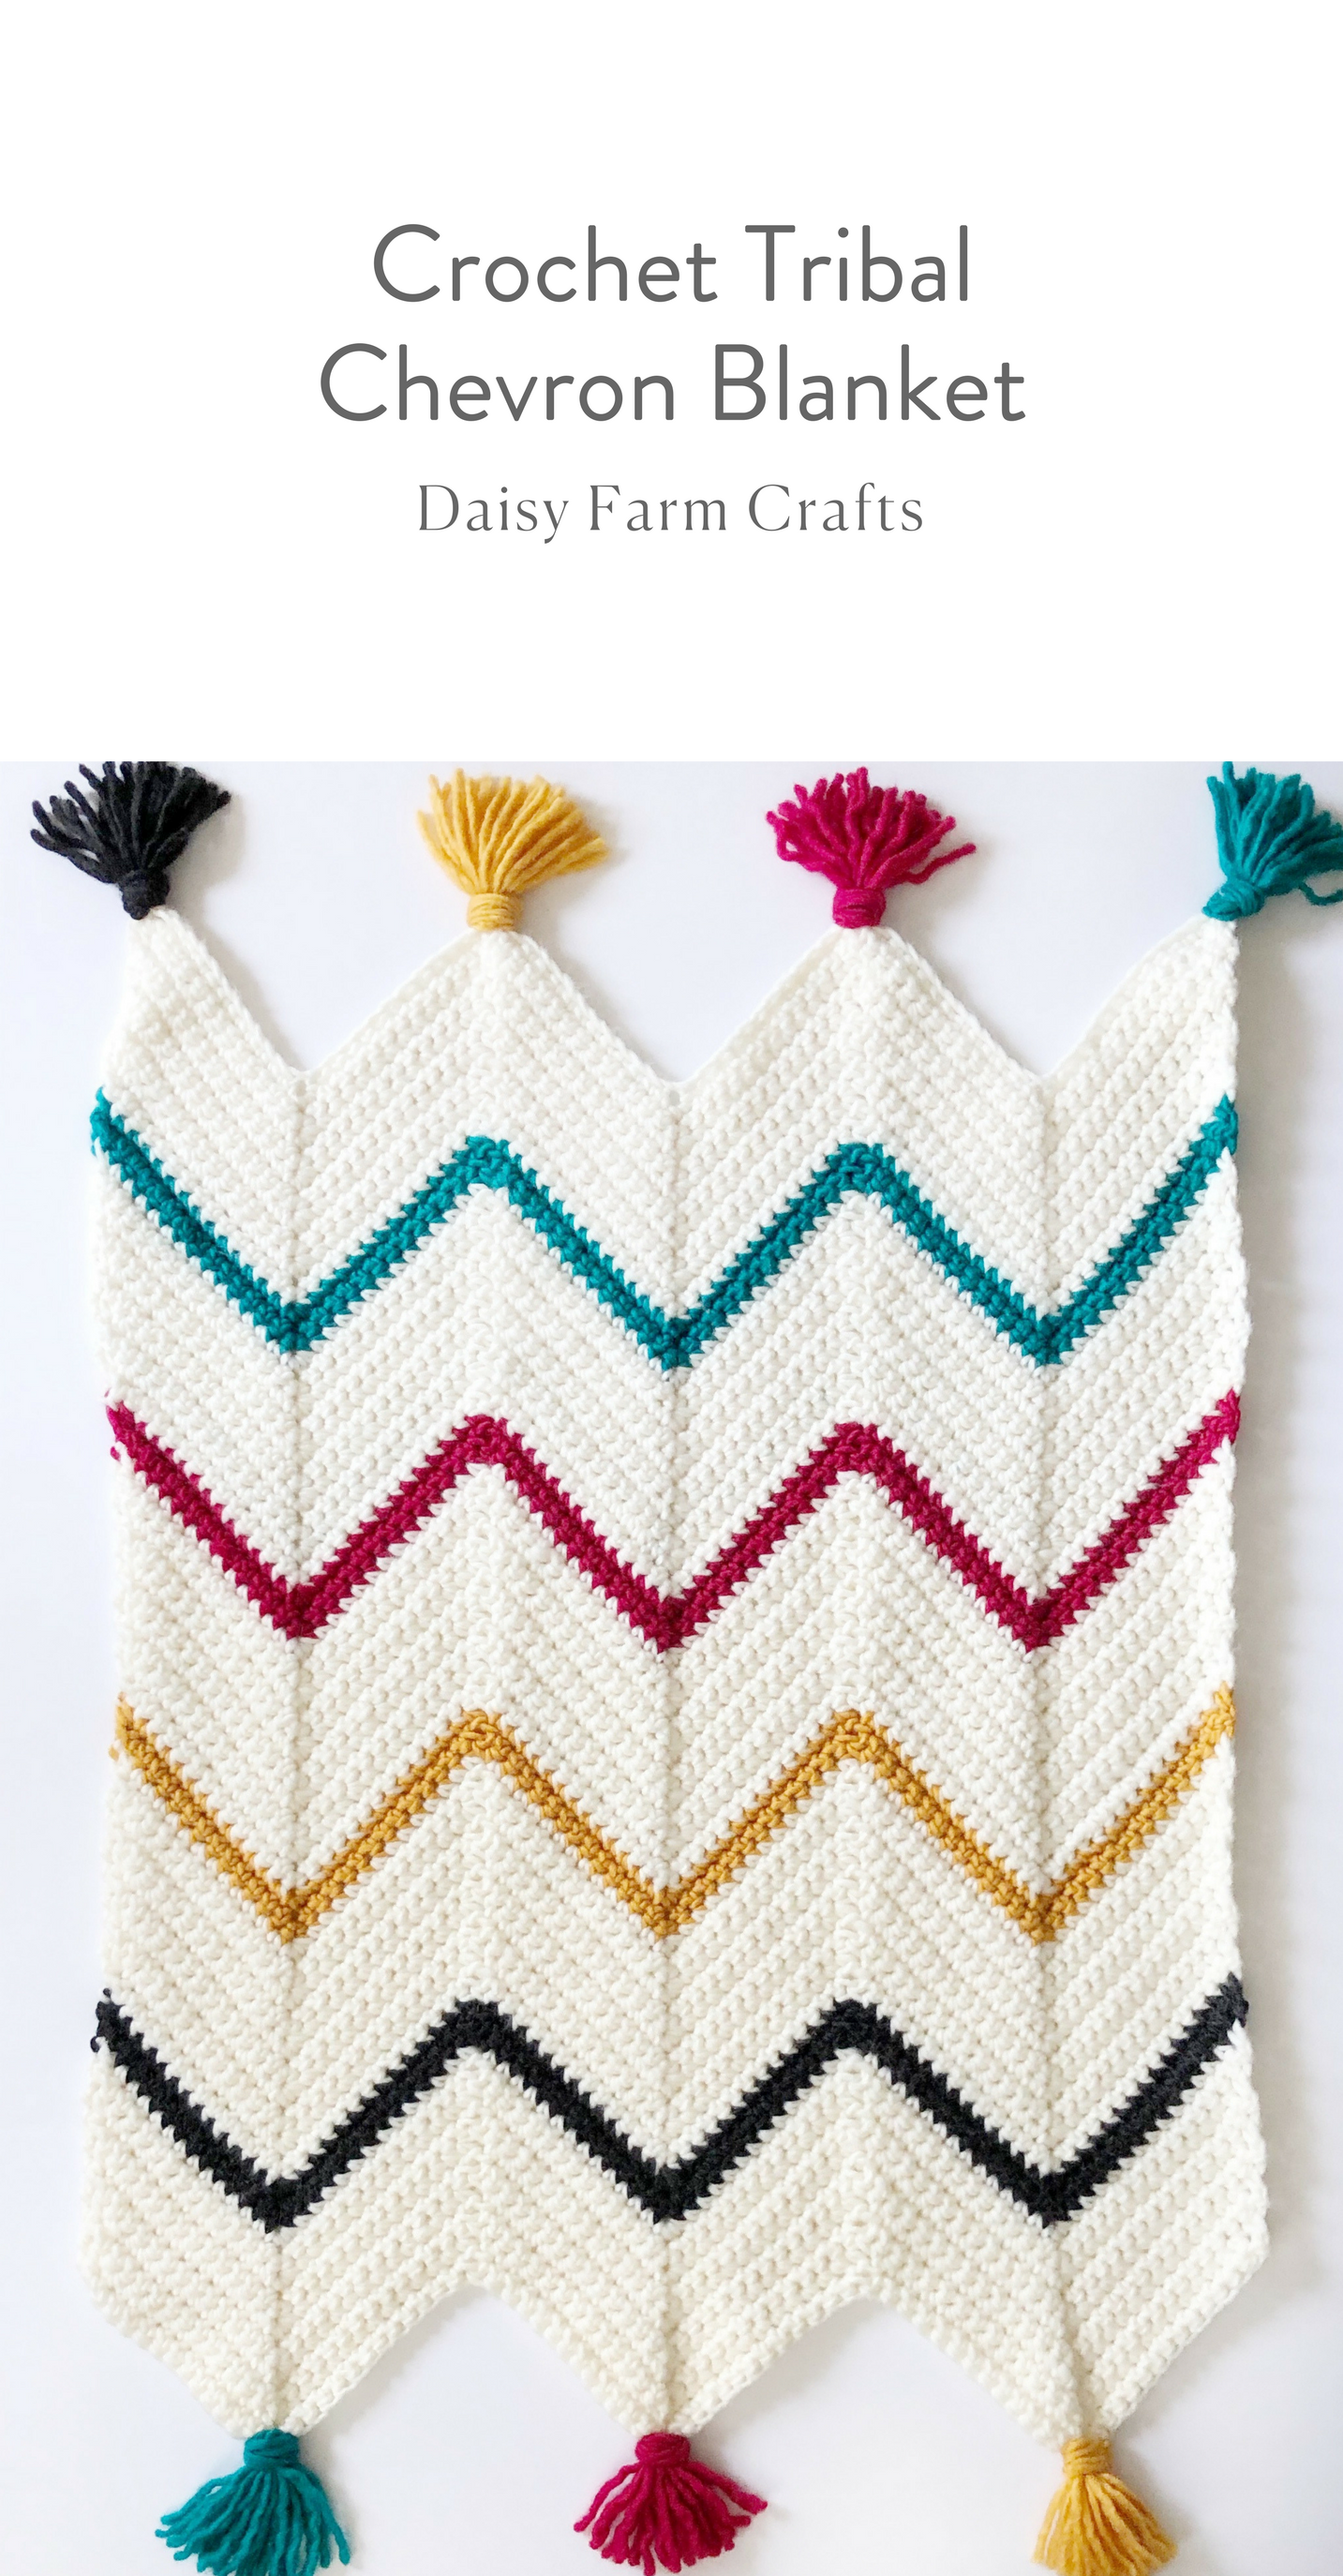 Free Pattern - Crochet Tribal Chevron Blanket | KNIT ME | Pinterest ...